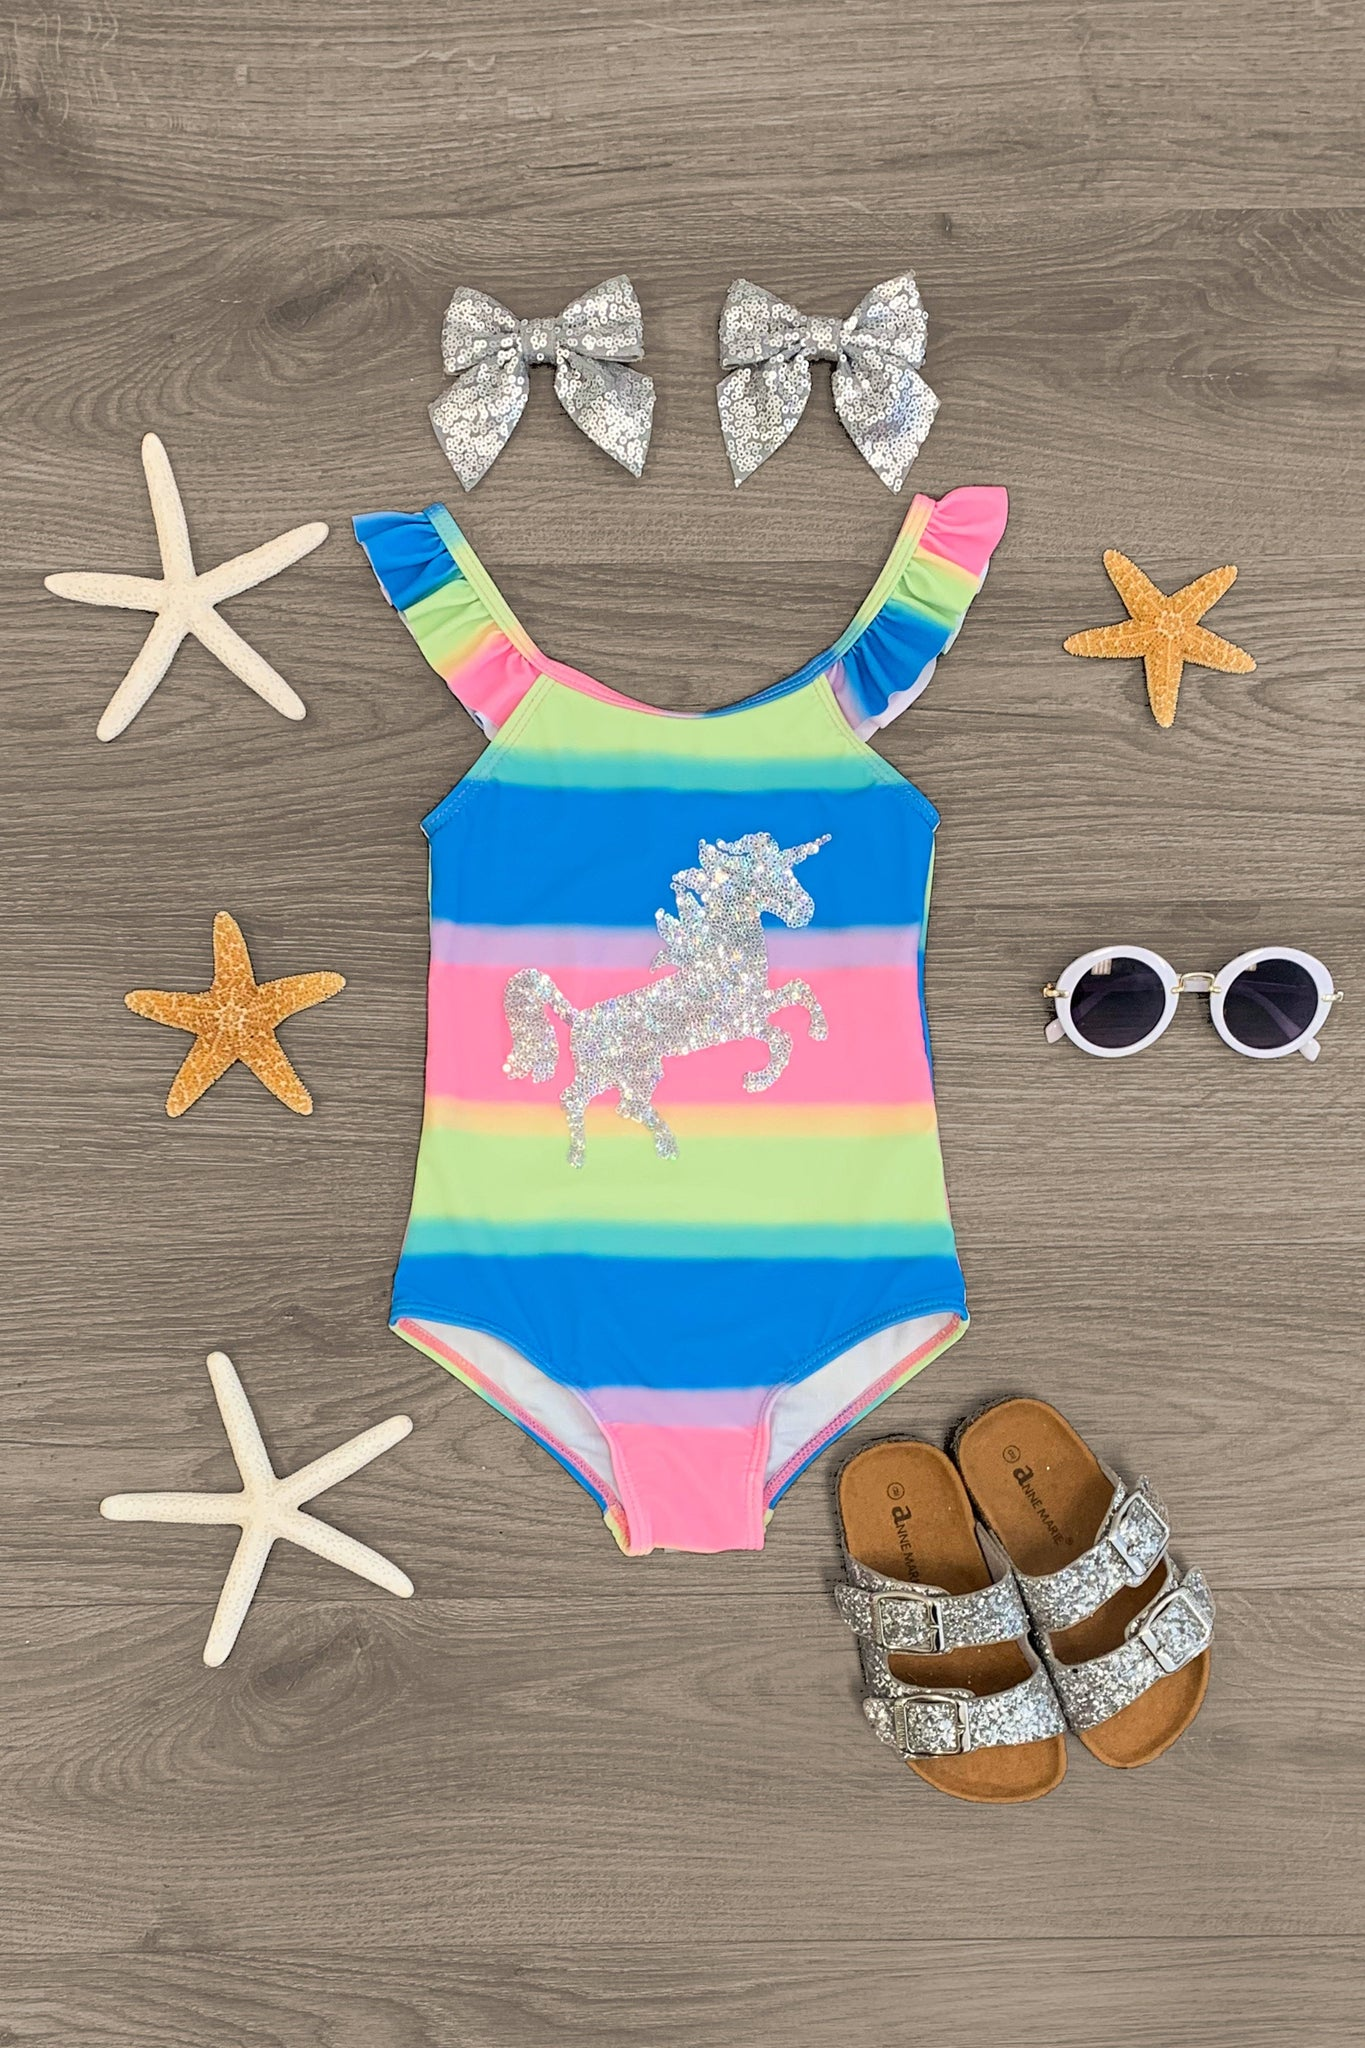 Sequin Unicorn Rainbow Swimsuit Set - 1 Piece Swimsuit Sparkle In Pink